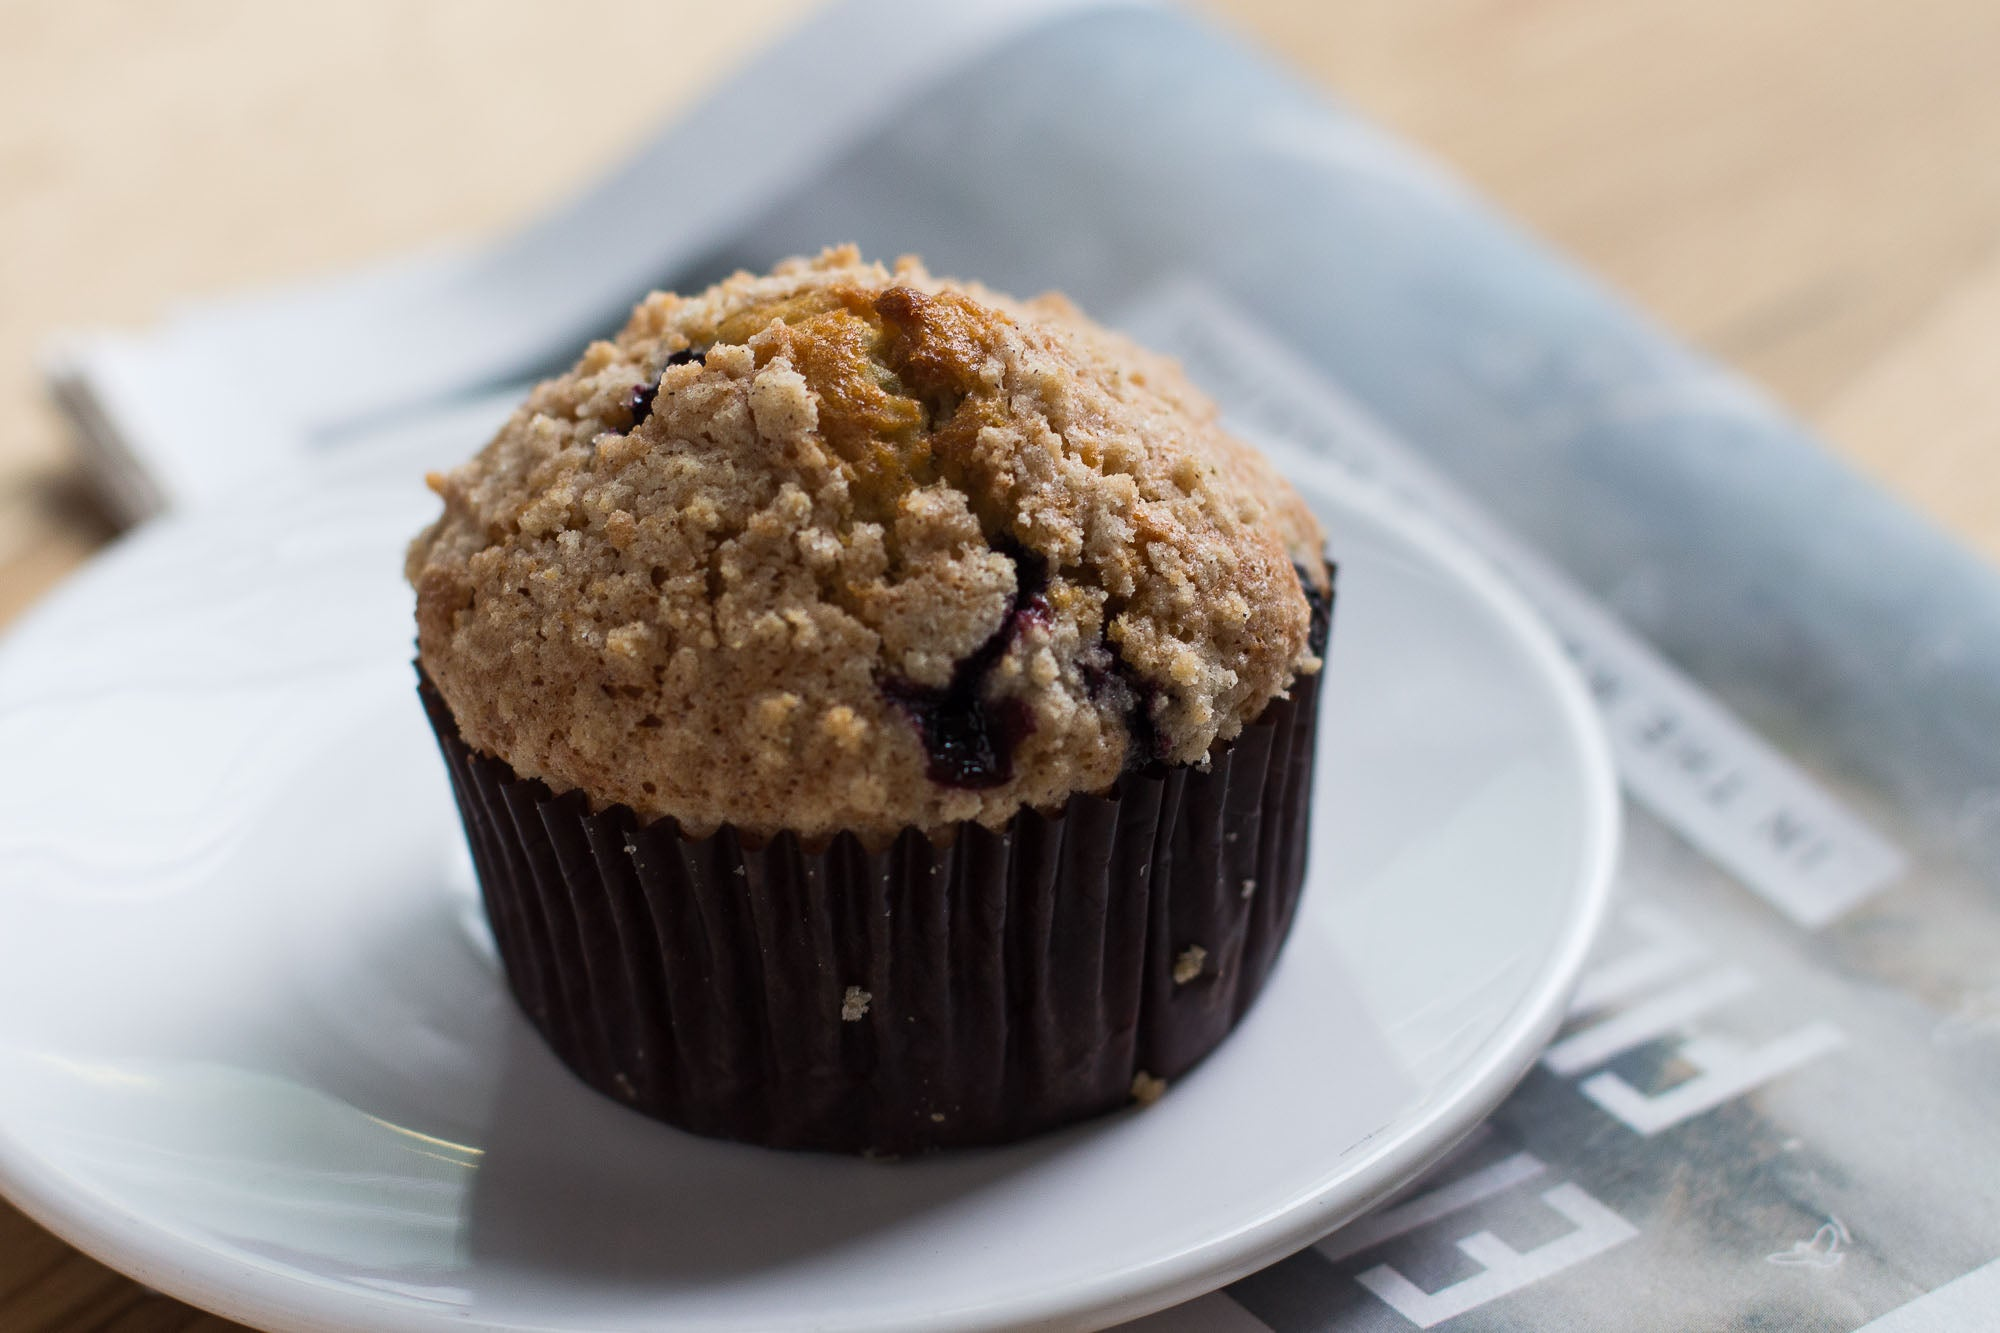 Blueberry Streusel Muffin Six Pack